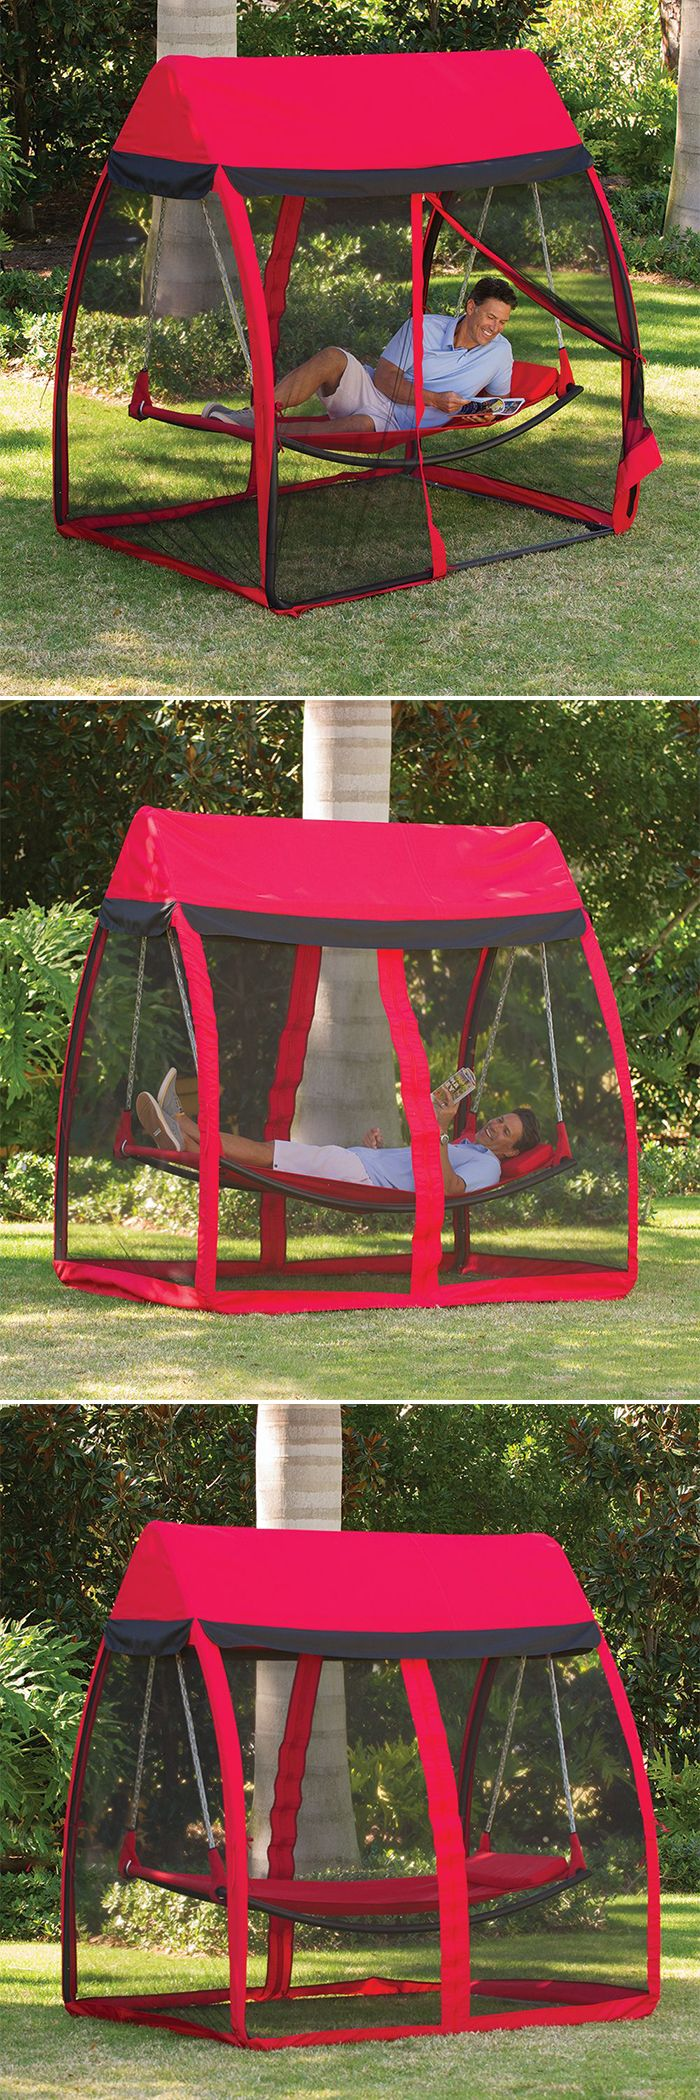 This is the hammock that shields you from pesky mosquitoes and insects while you sway comfortably. The hammock is covered by a canopy with four sides comprised of super-fine, nylon netting that keeps out mosquitoes while still allowing cooling cross breez d'autres gadgets ici : http://amzn.to/2kWxdPn